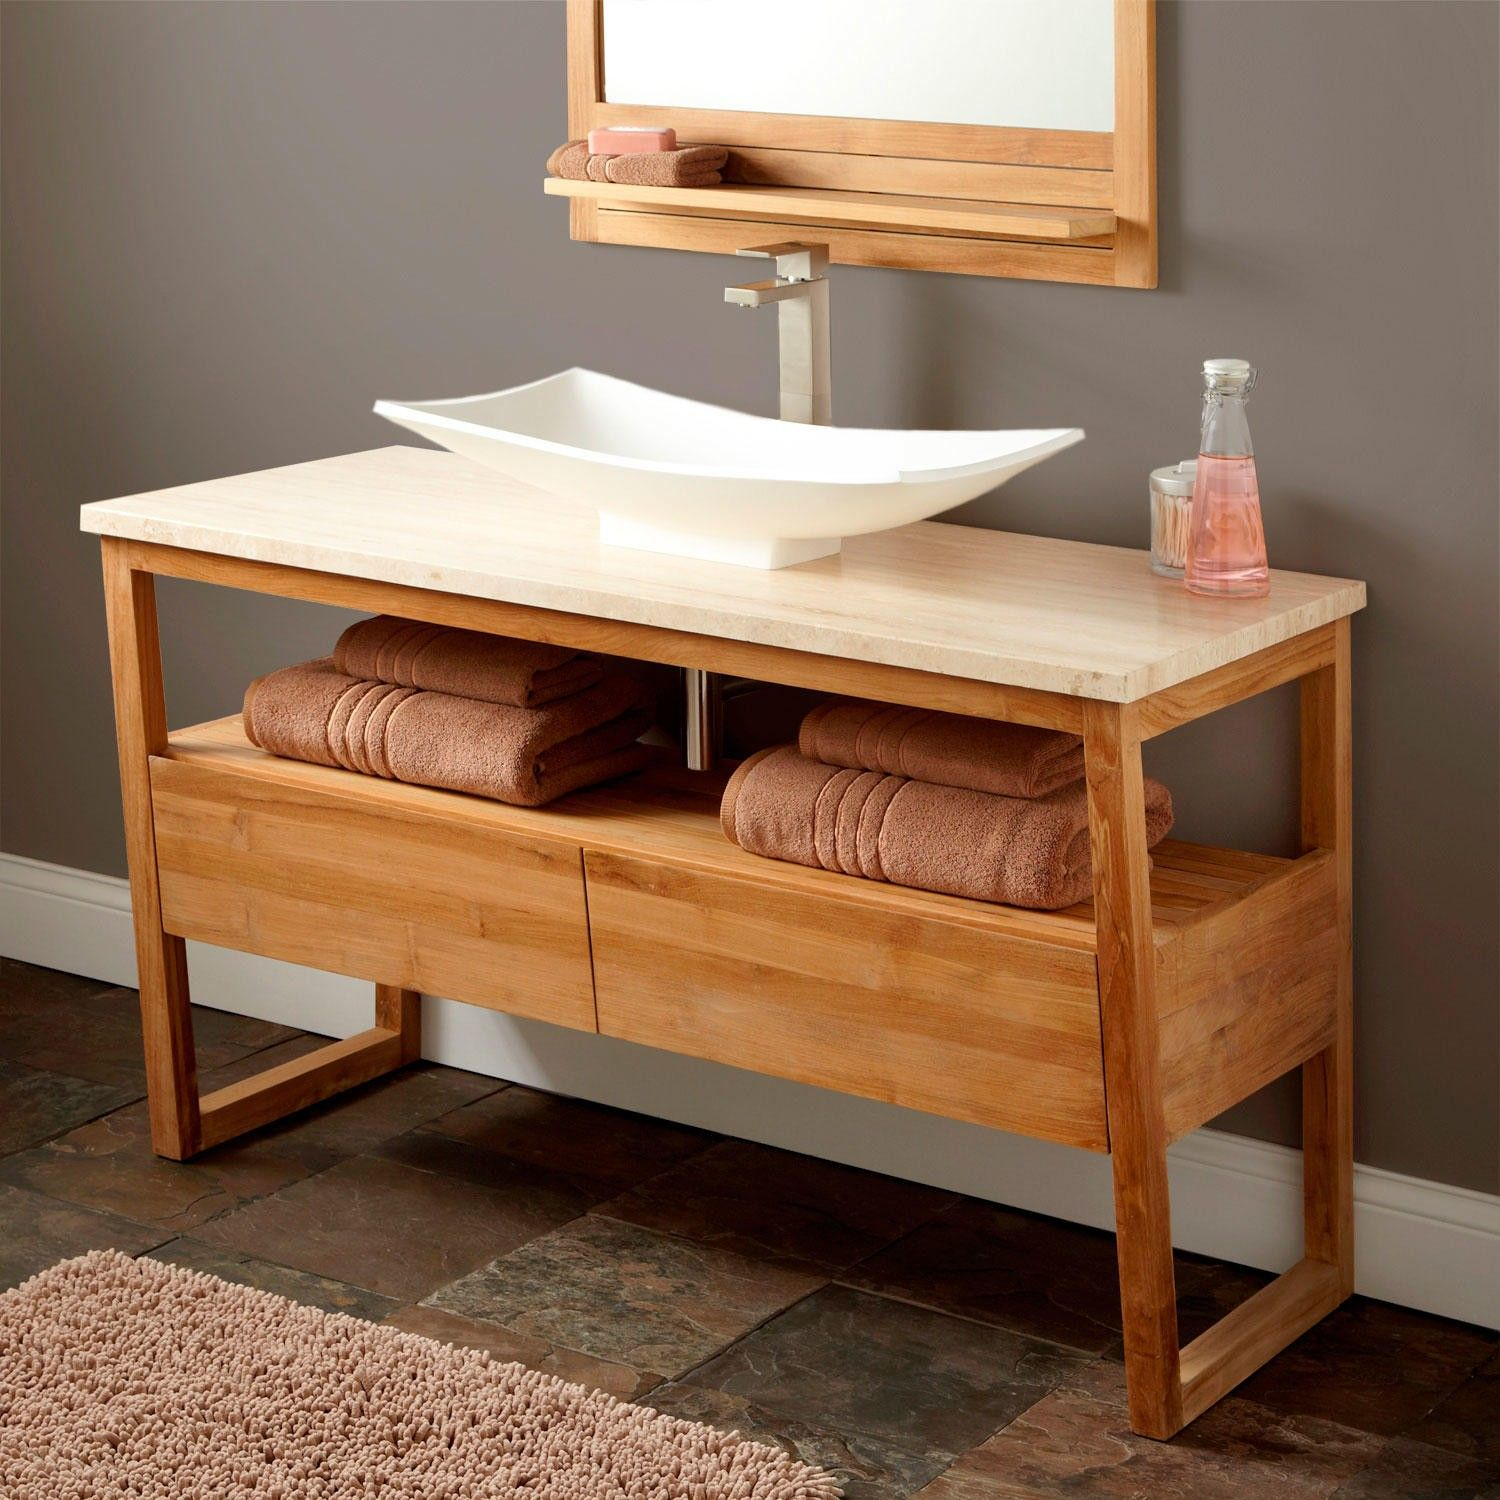 This Coulda Been It If It Came A Little Longer. 48 Emzen Teak Console  Vanity For Vessel Sink. Find This Pin And More On First Ave   Kitchen And  Bath ...